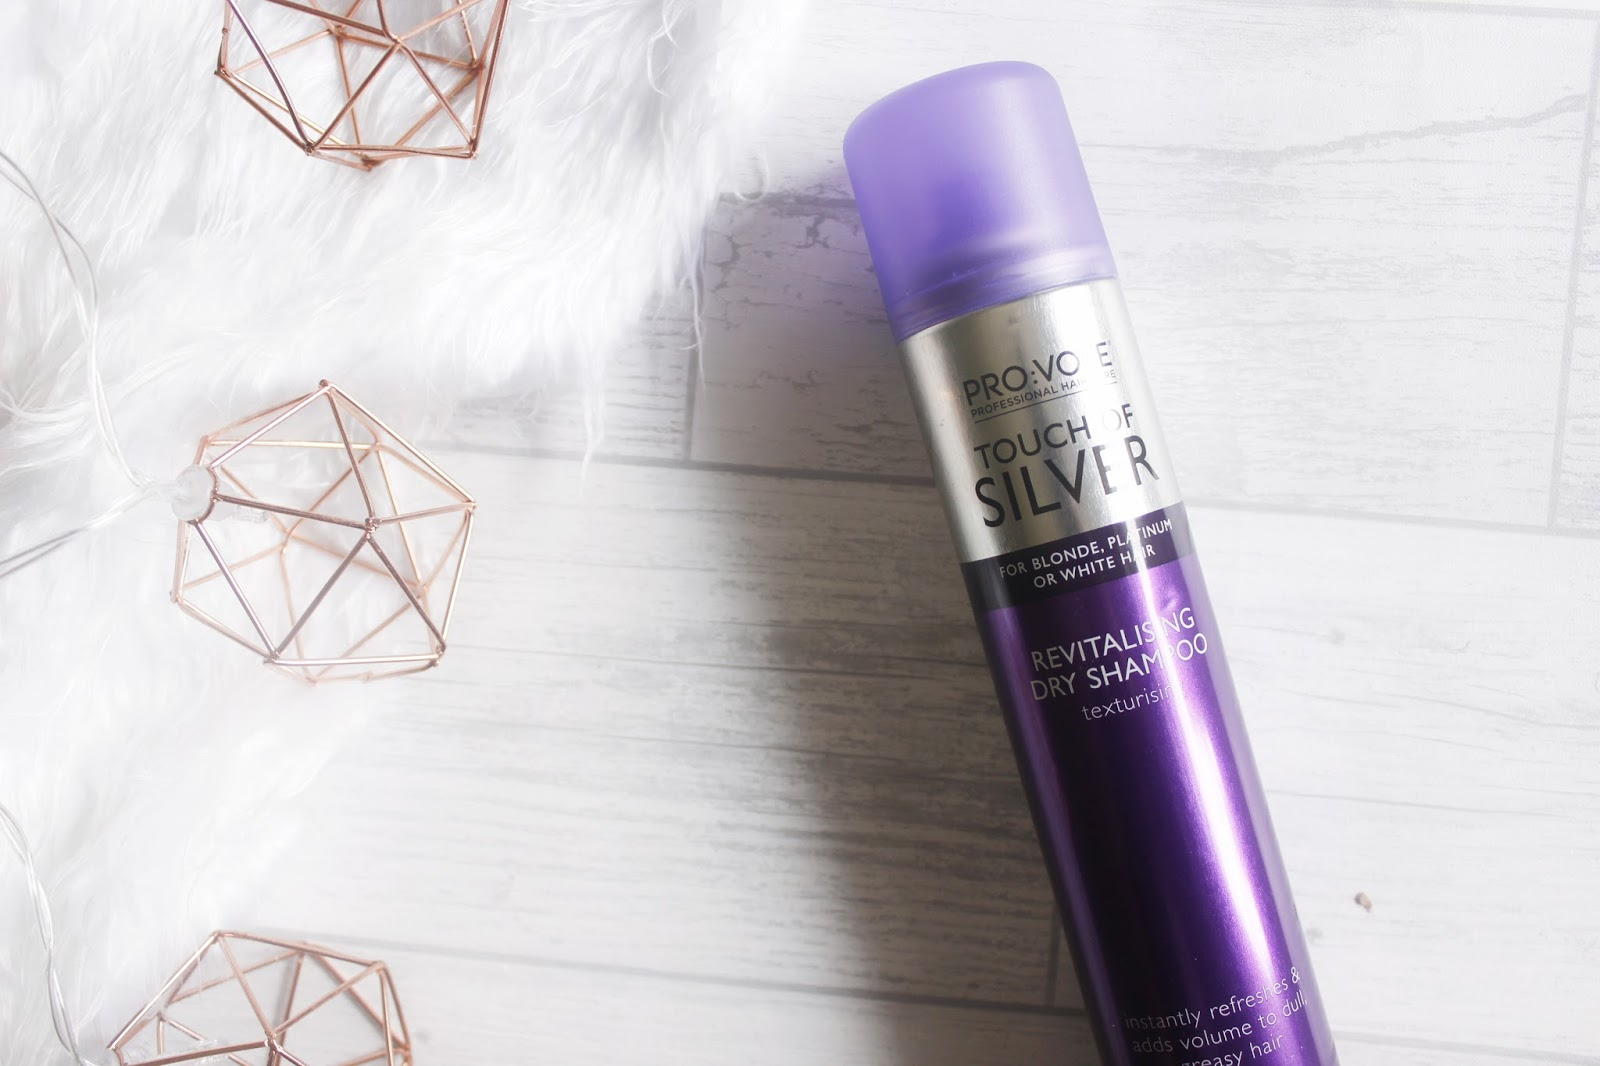 See The Stars - Pro:Voke Touch Of Silver Dry Shampoo